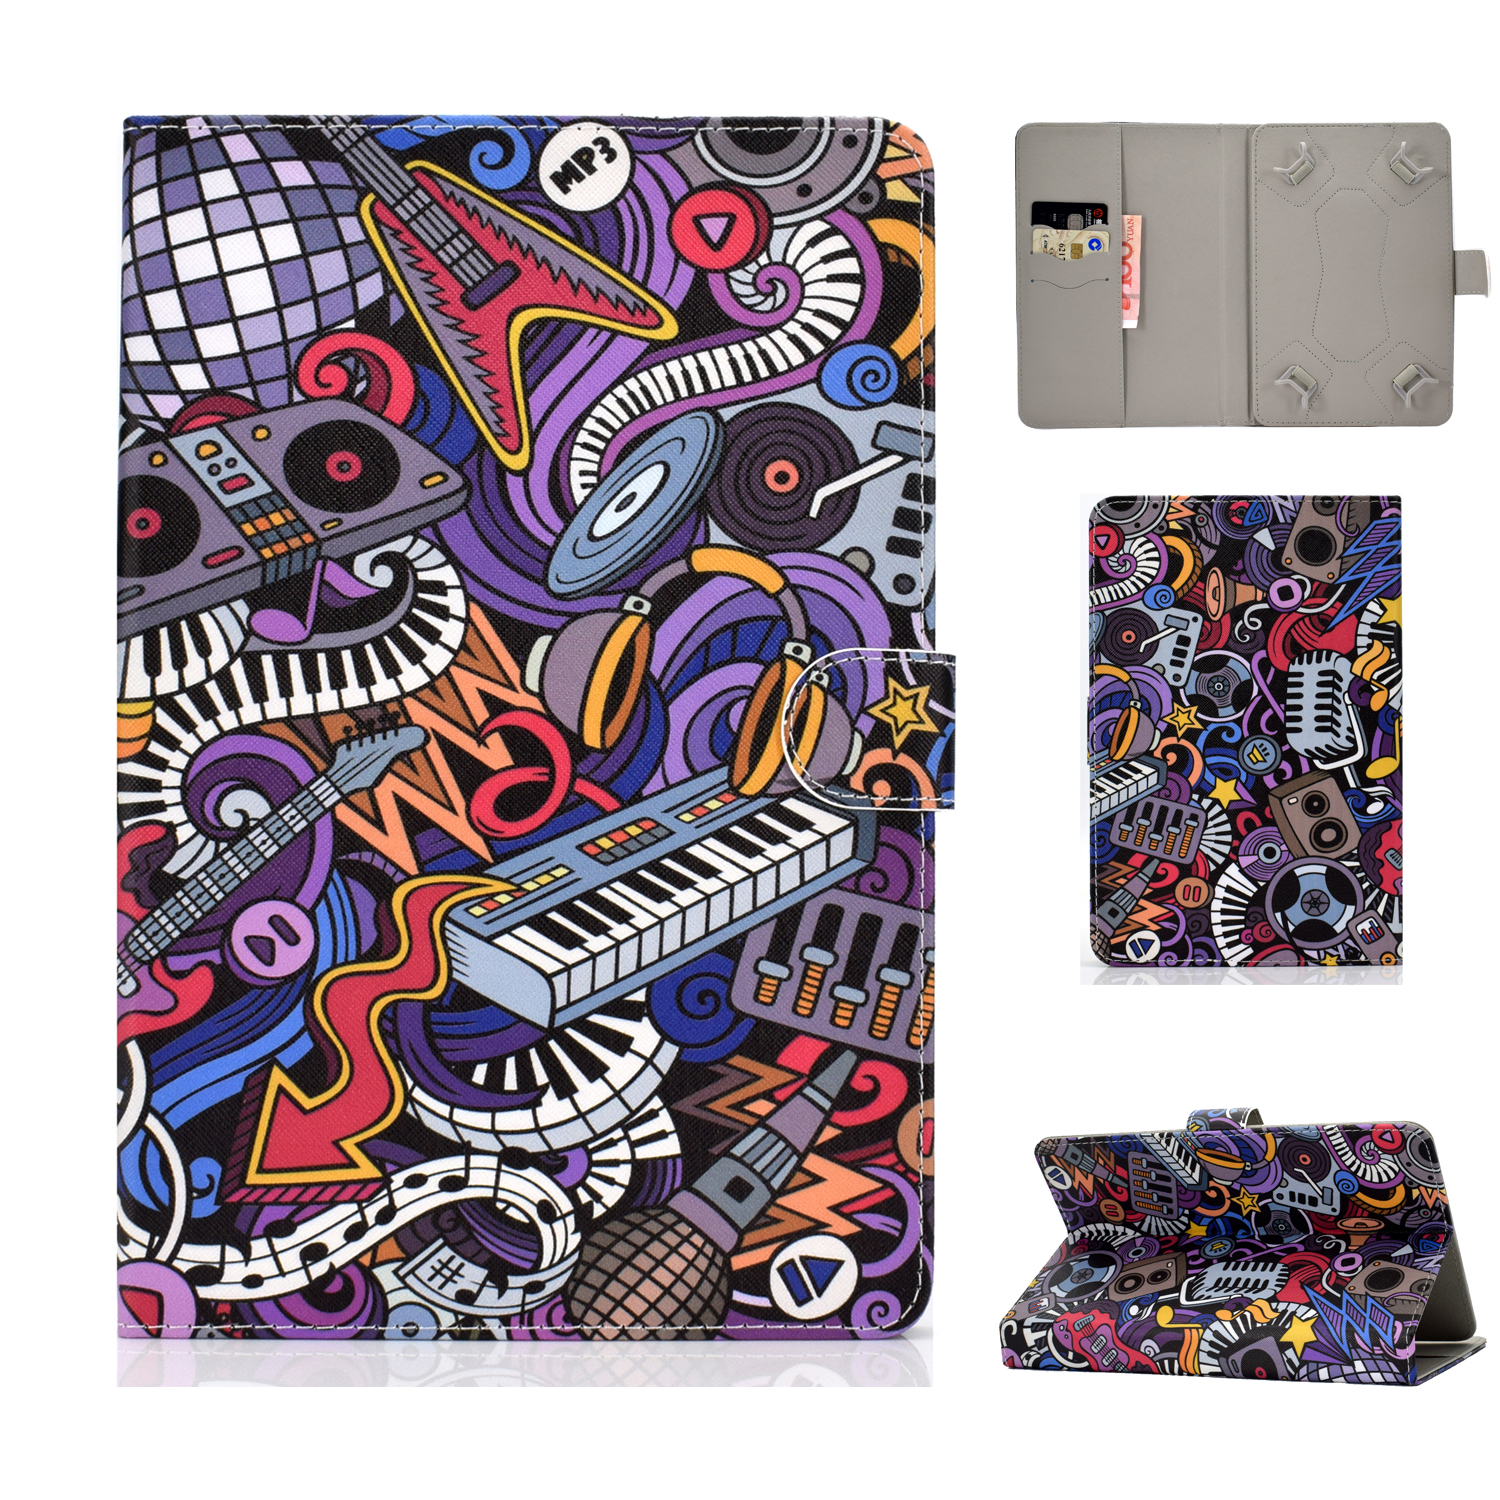 Universal Laptop Protective Case 7Inches Color Painted PU Cover with Front Snap Graffiti